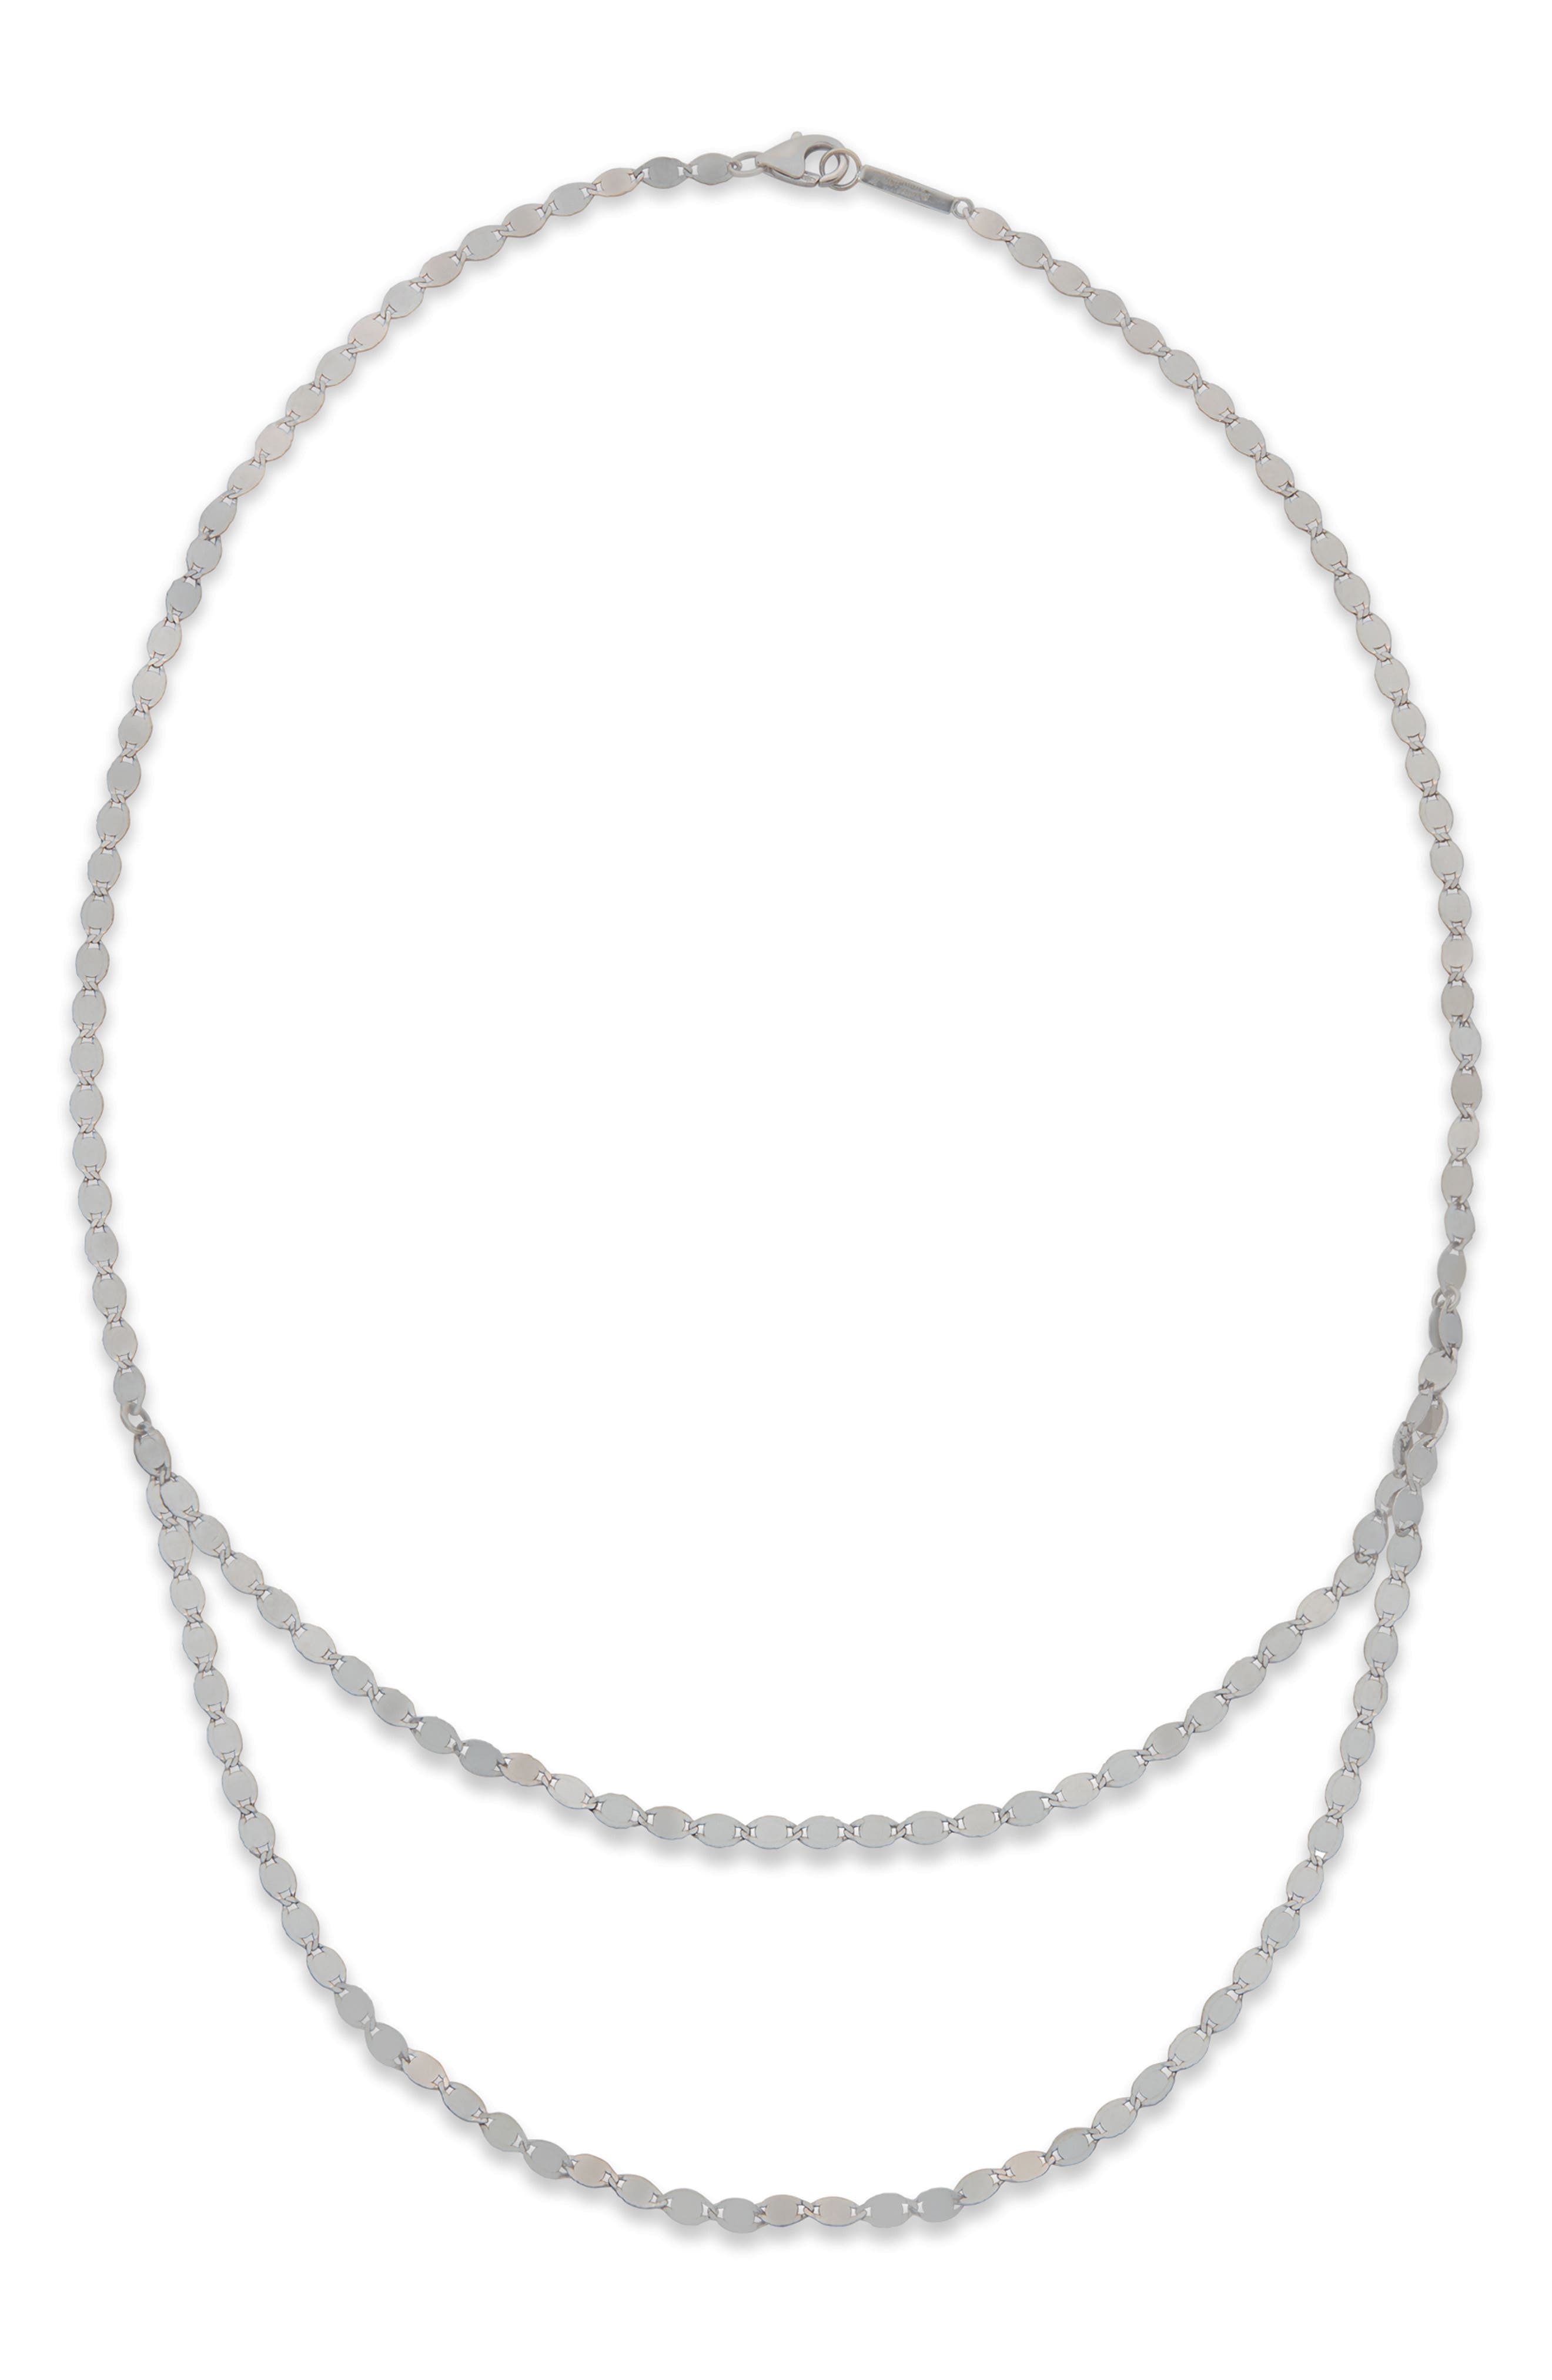 Chain Double Layer Necklace,                             Main thumbnail 1, color,                             WHITE GOLD